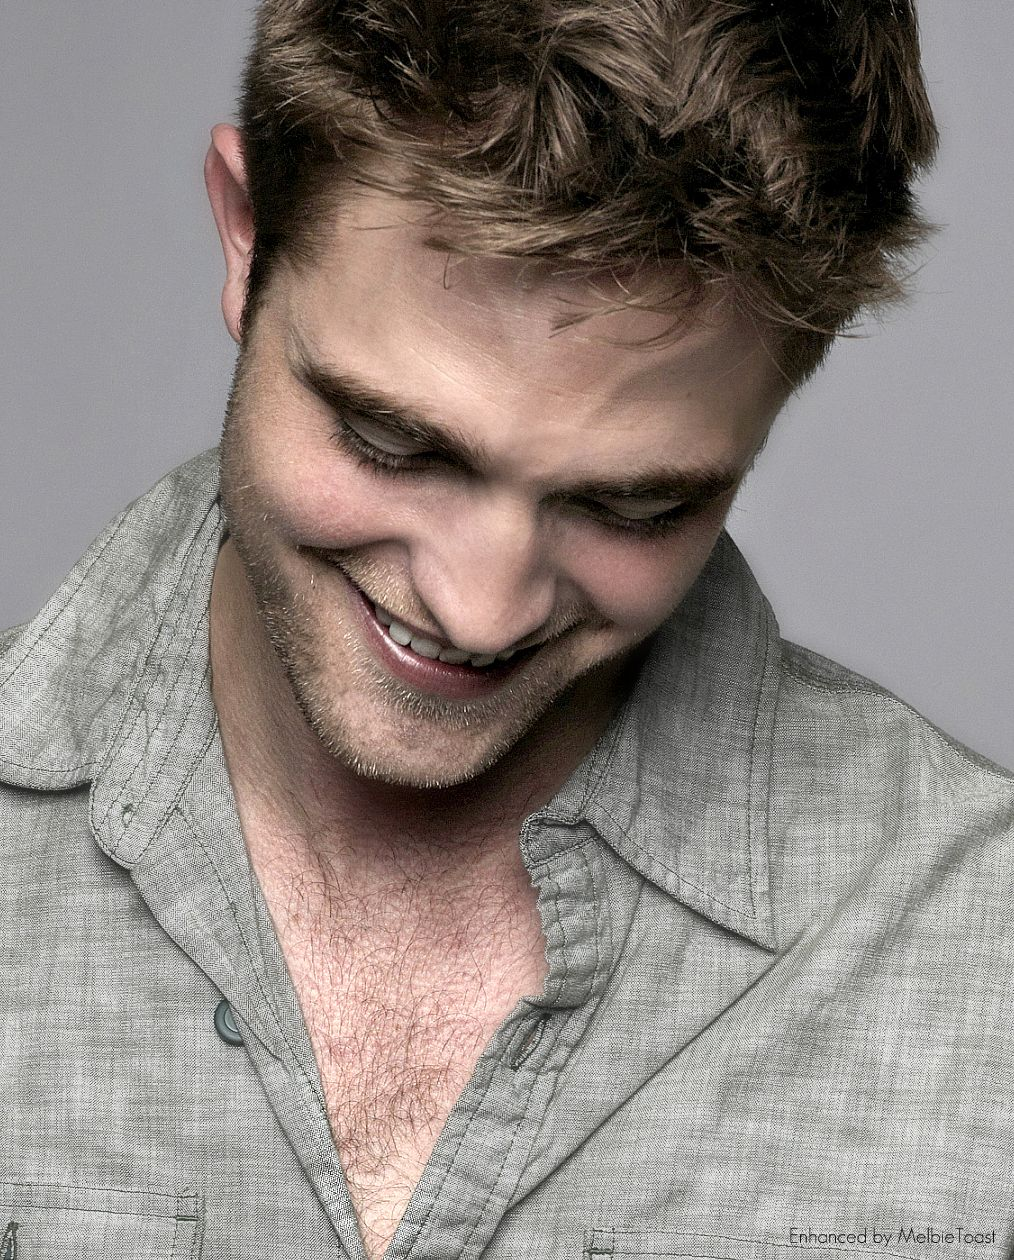 Robert pattinson twilight image by Leslie E on Someone